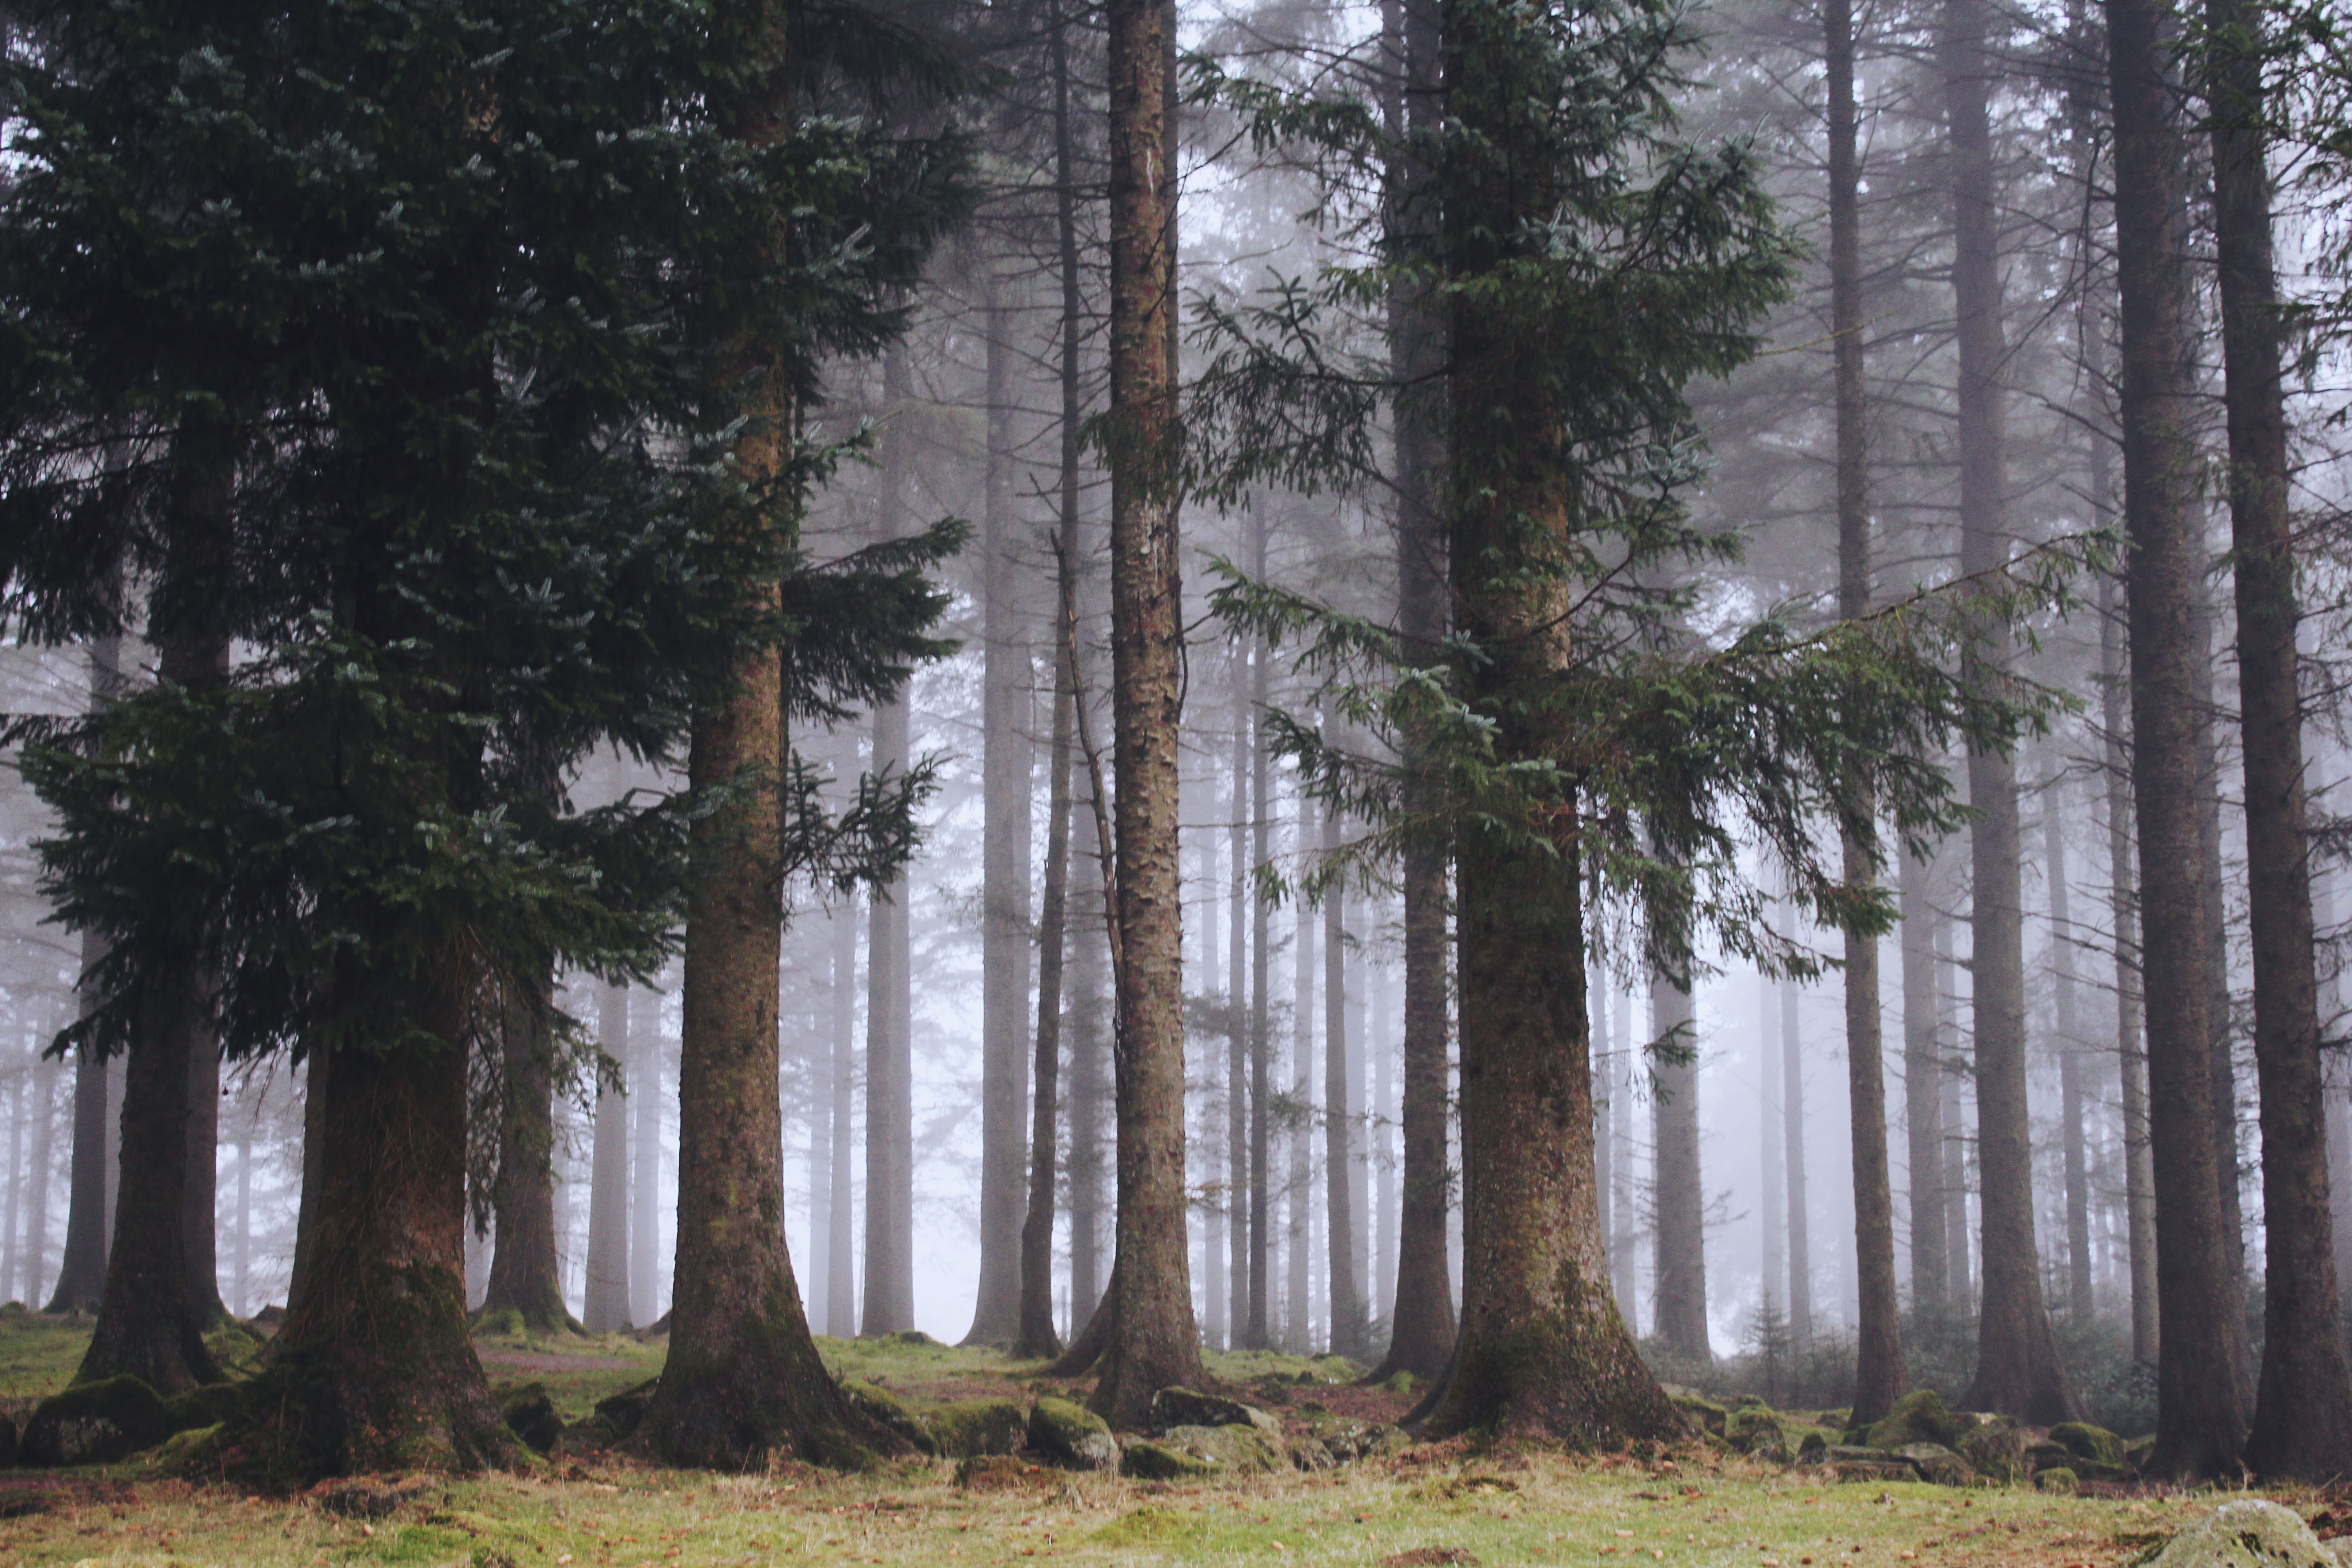 Pine forest at Bellever Forest, Dartmoor